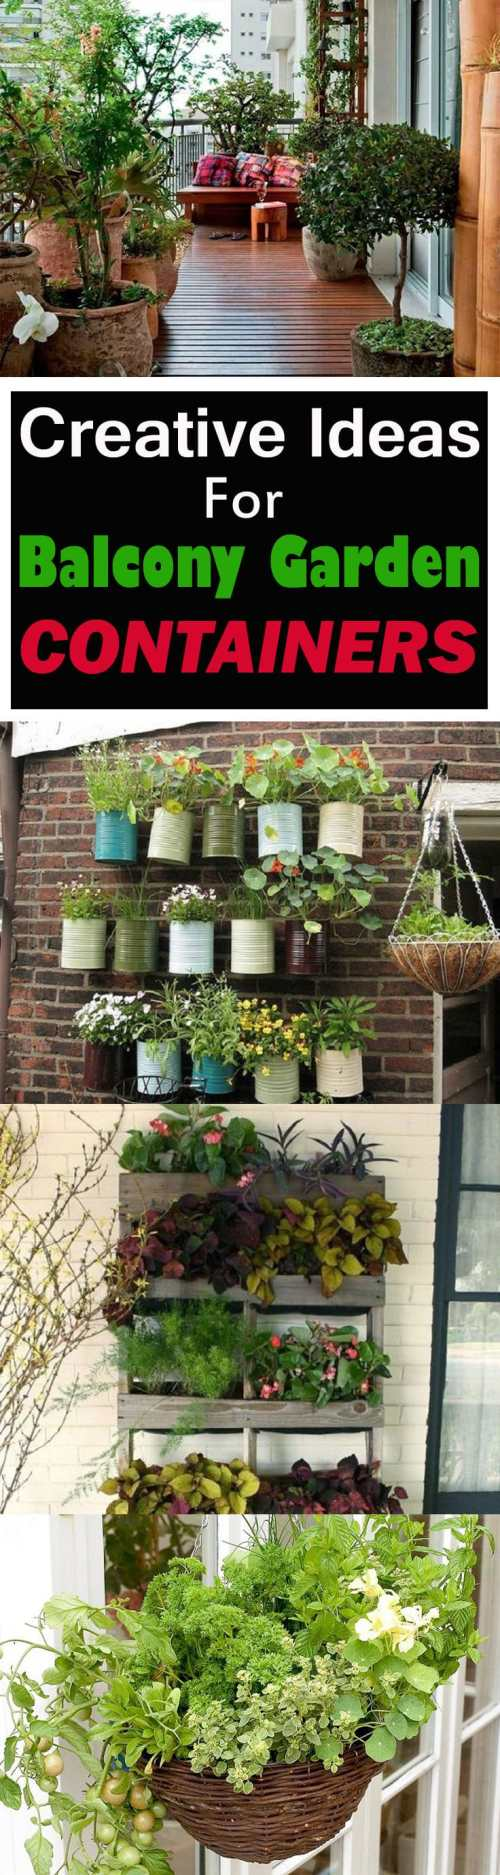 Medium Of Balcony Gardening Ideas